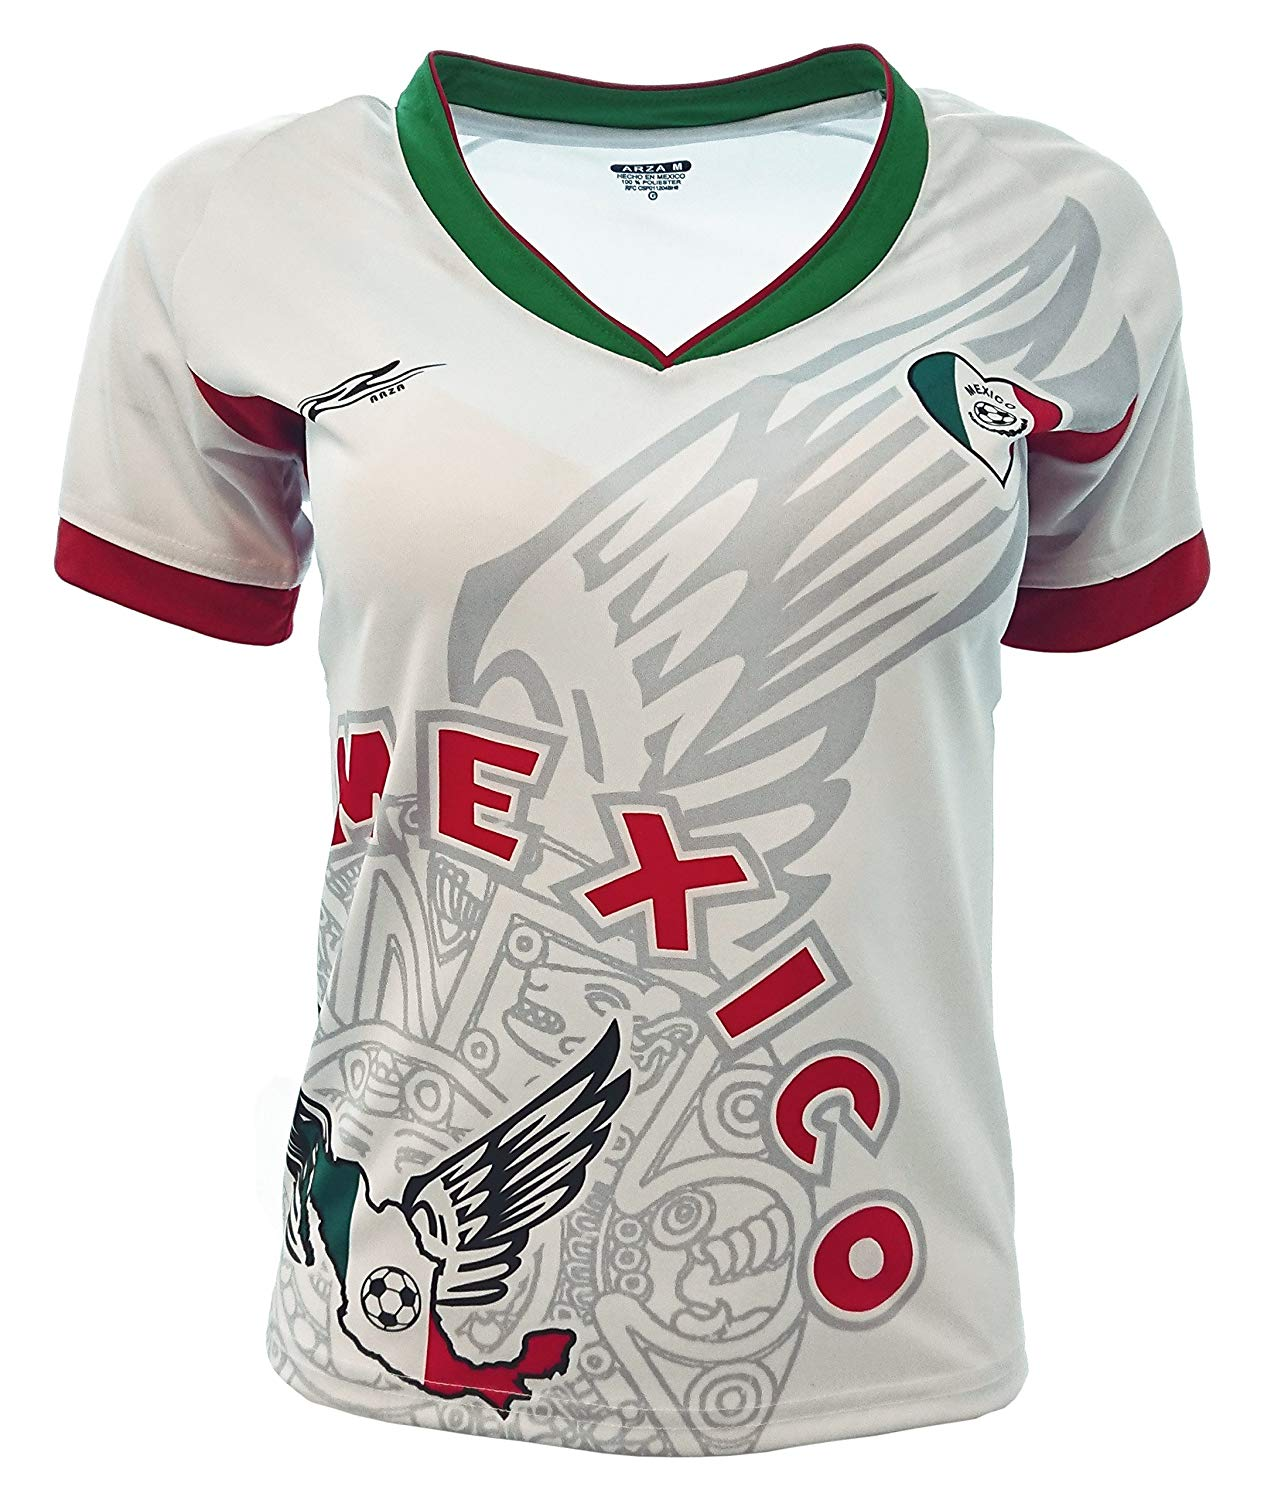 7539ca38f Womens Mexico Soccer T Shirt – EDGE Engineering and Consulting Limited